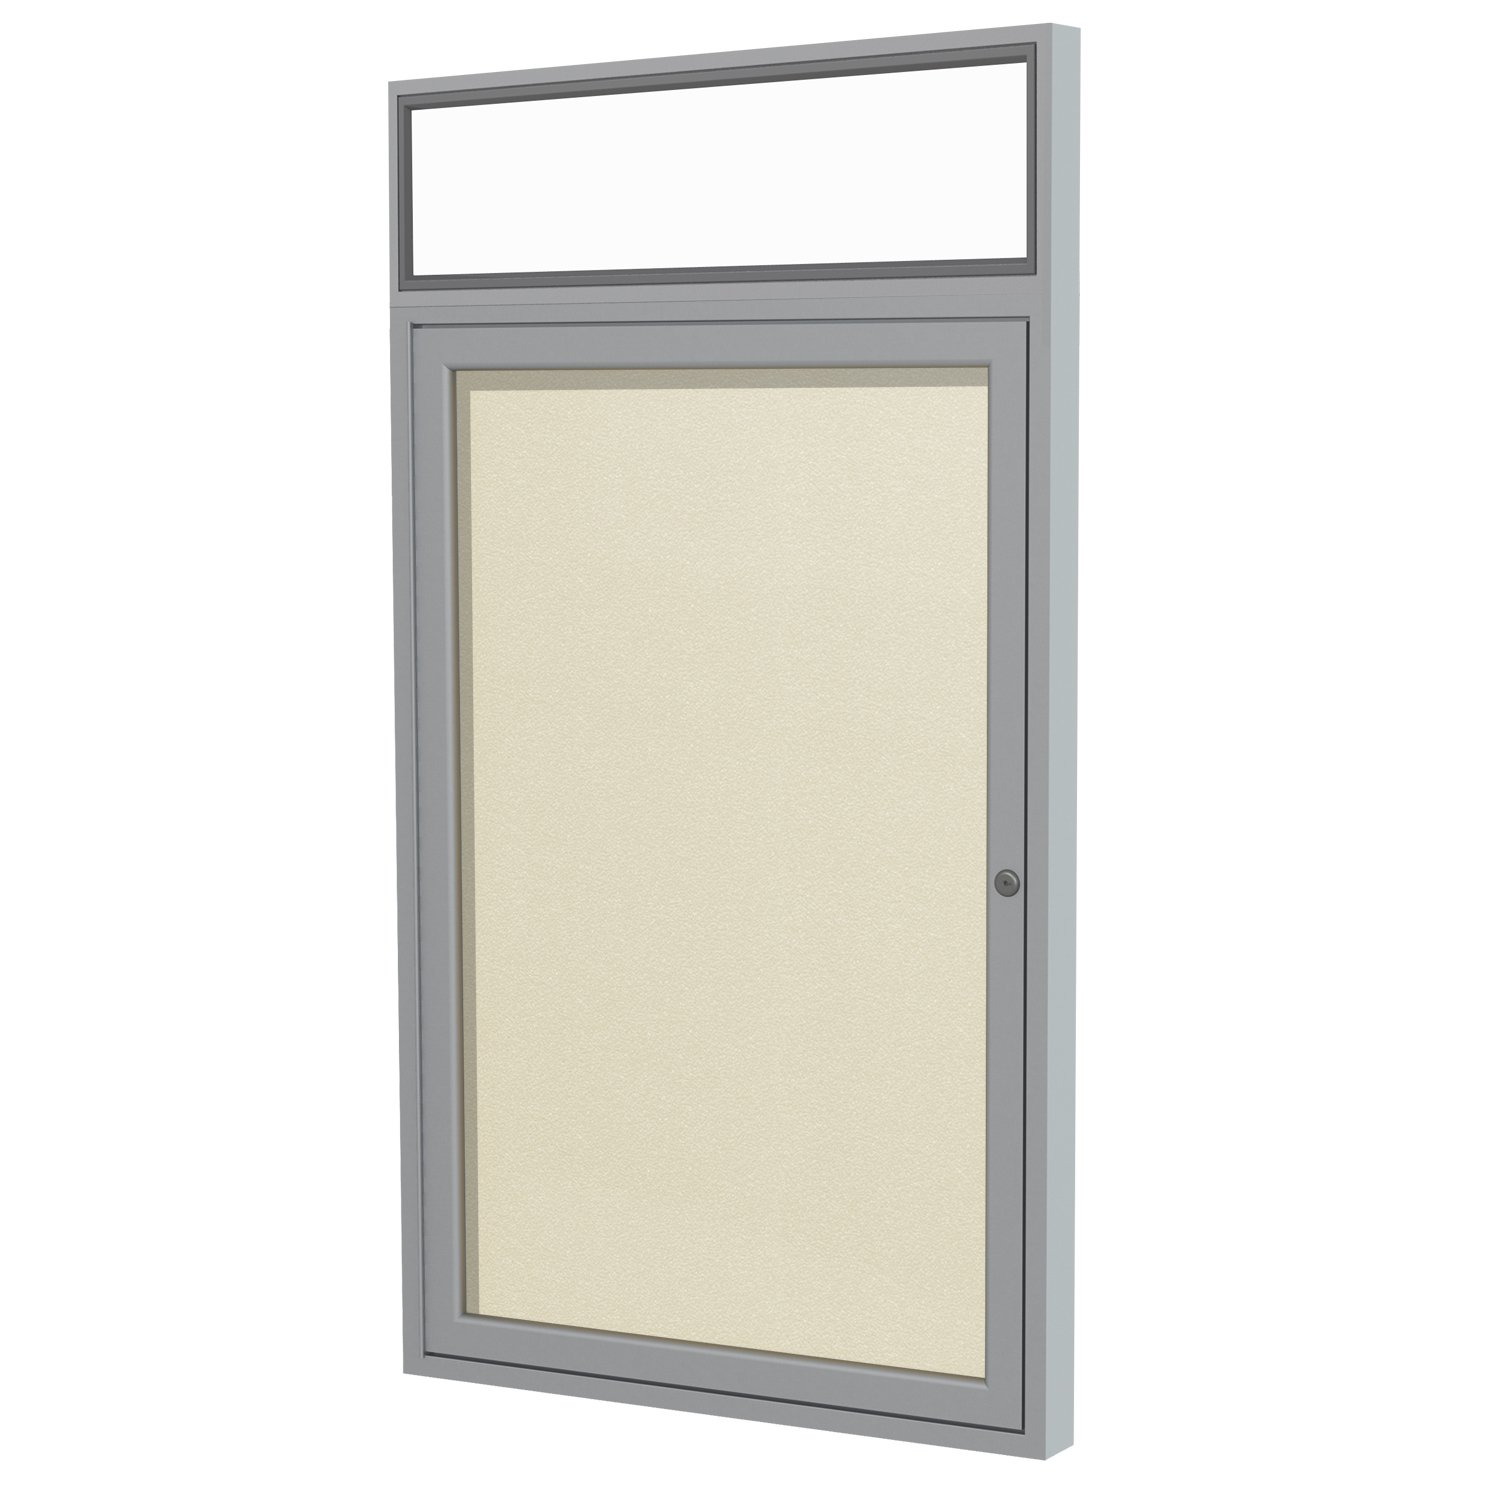 Ghent 3 x 2 Inches Outdoor Satin Frame Enclosed Vinyl Bulletin Board with Headliner, Ivory, Made in the USA by Ghent